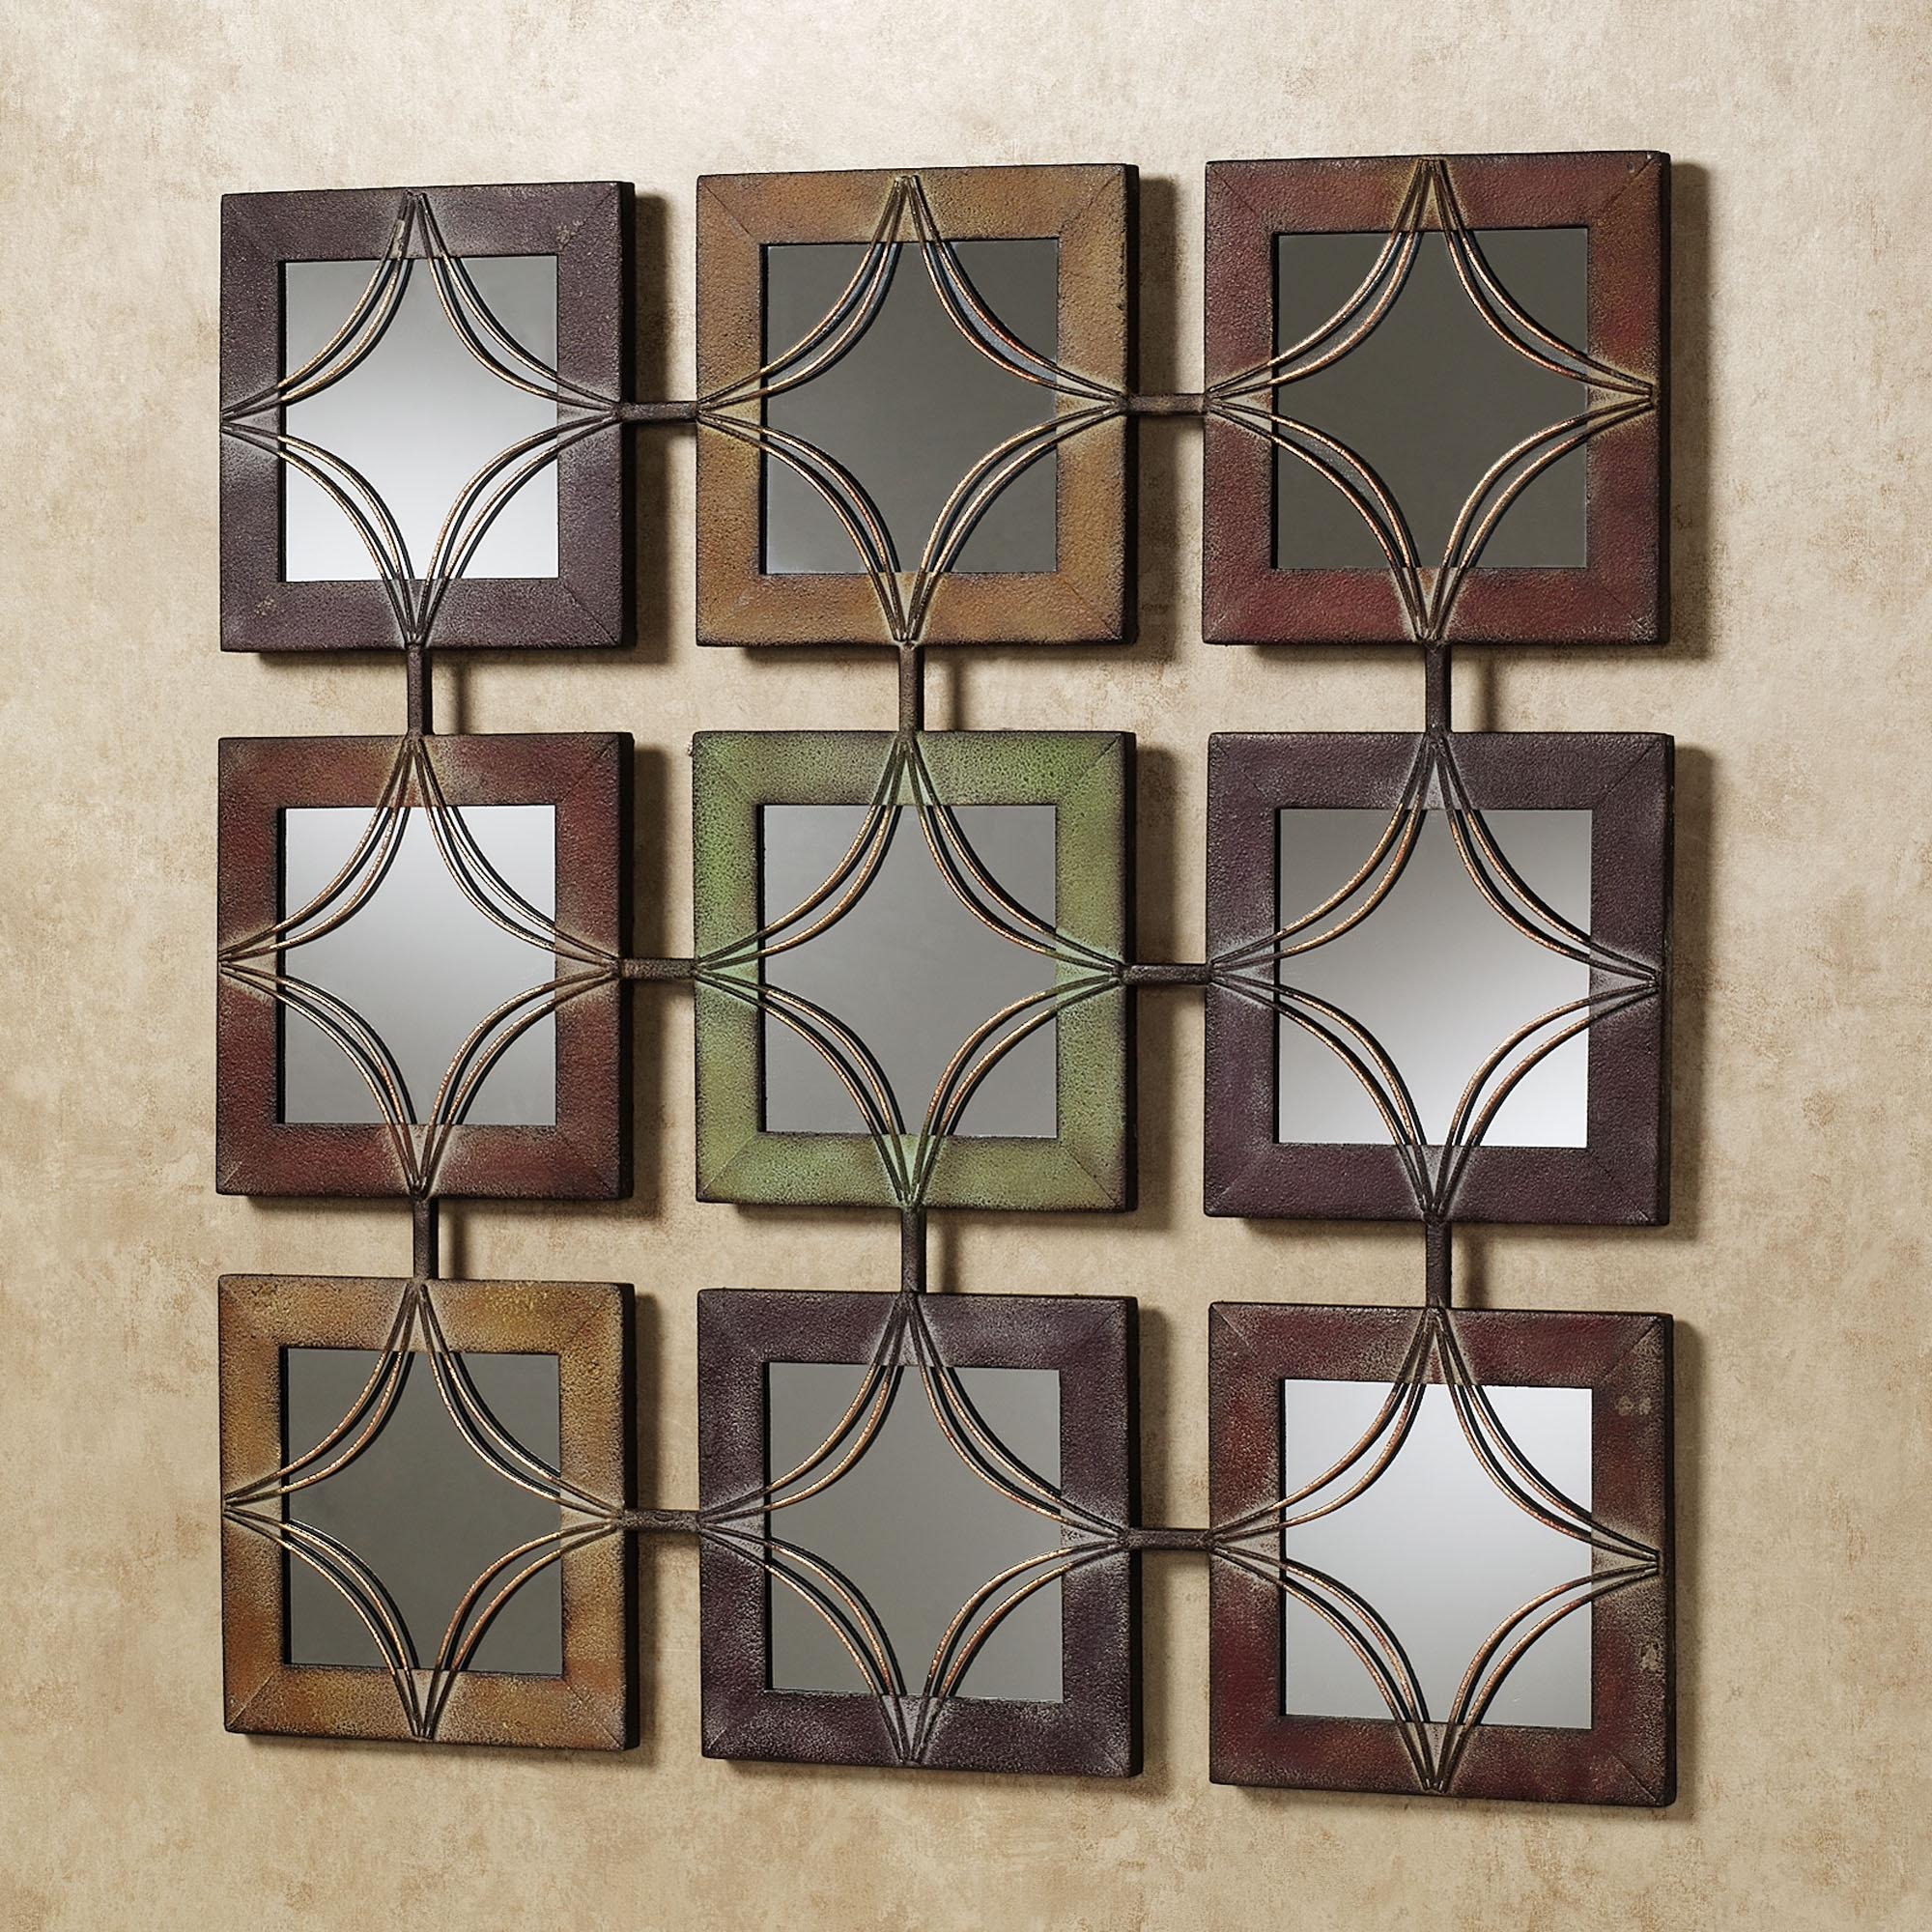 Matching Wall Art Inside Most Popular Wall Art Decor: Domini Metal Mirrored Wall Art Textured Square (View 5 of 15)